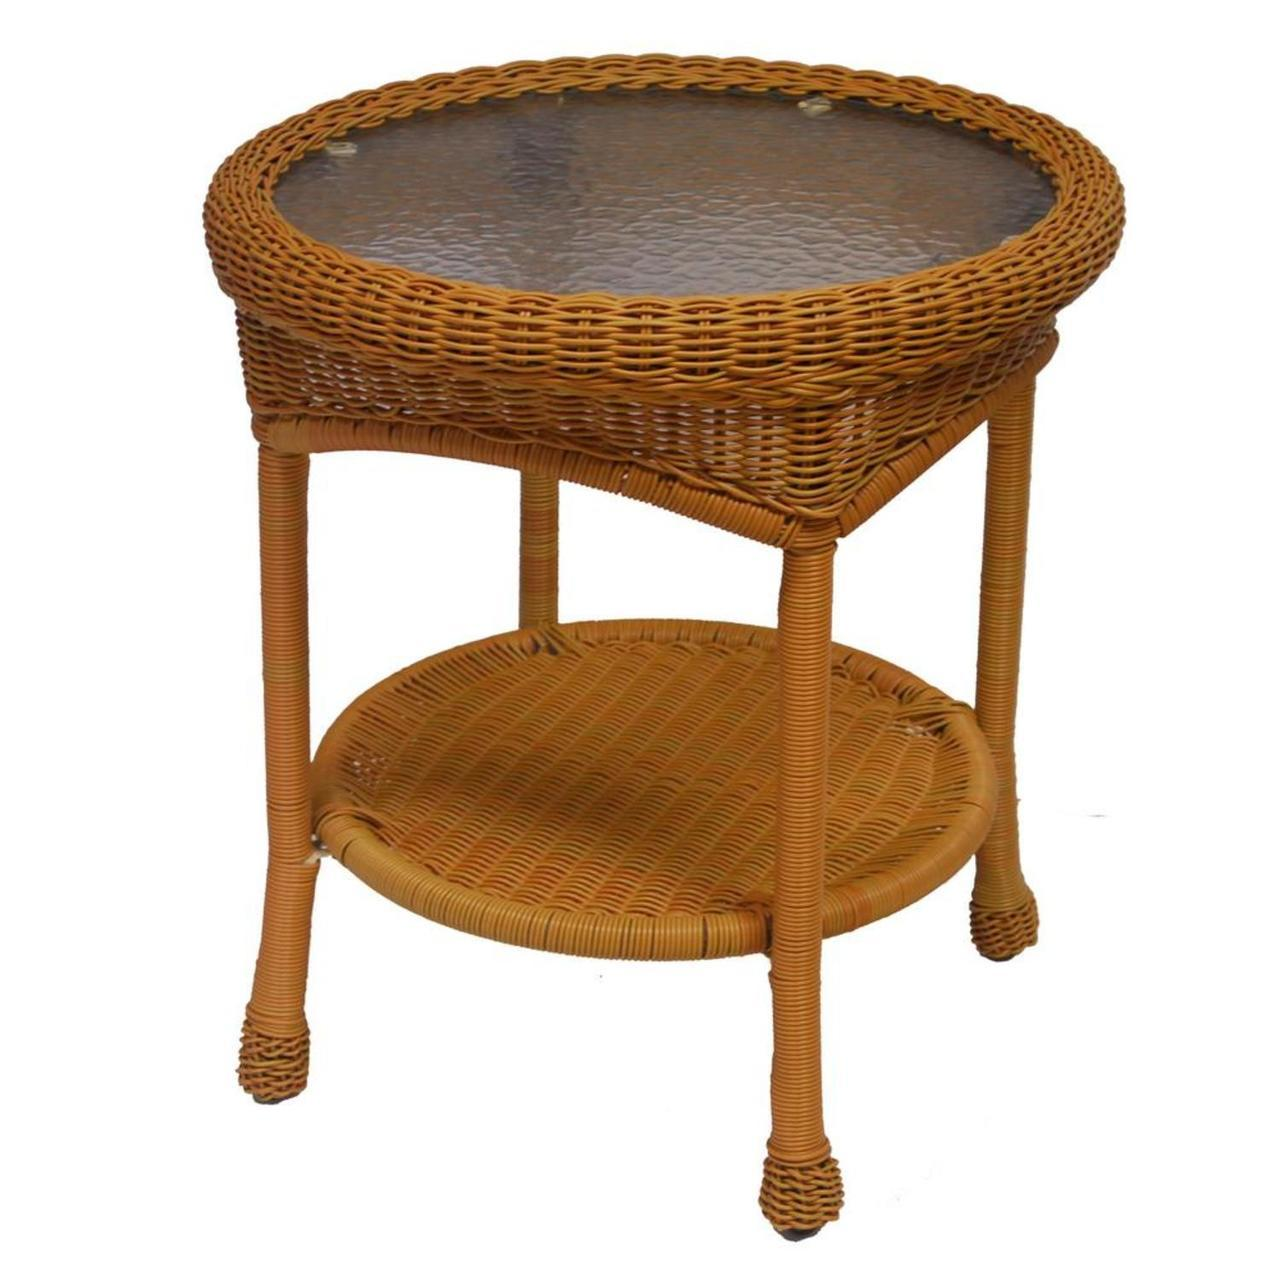 honey brown two level resin wicker end table with glass top tables outdoor living funky bedside cabinets contemporary coffee toronto universal furniture gabriella big lots for